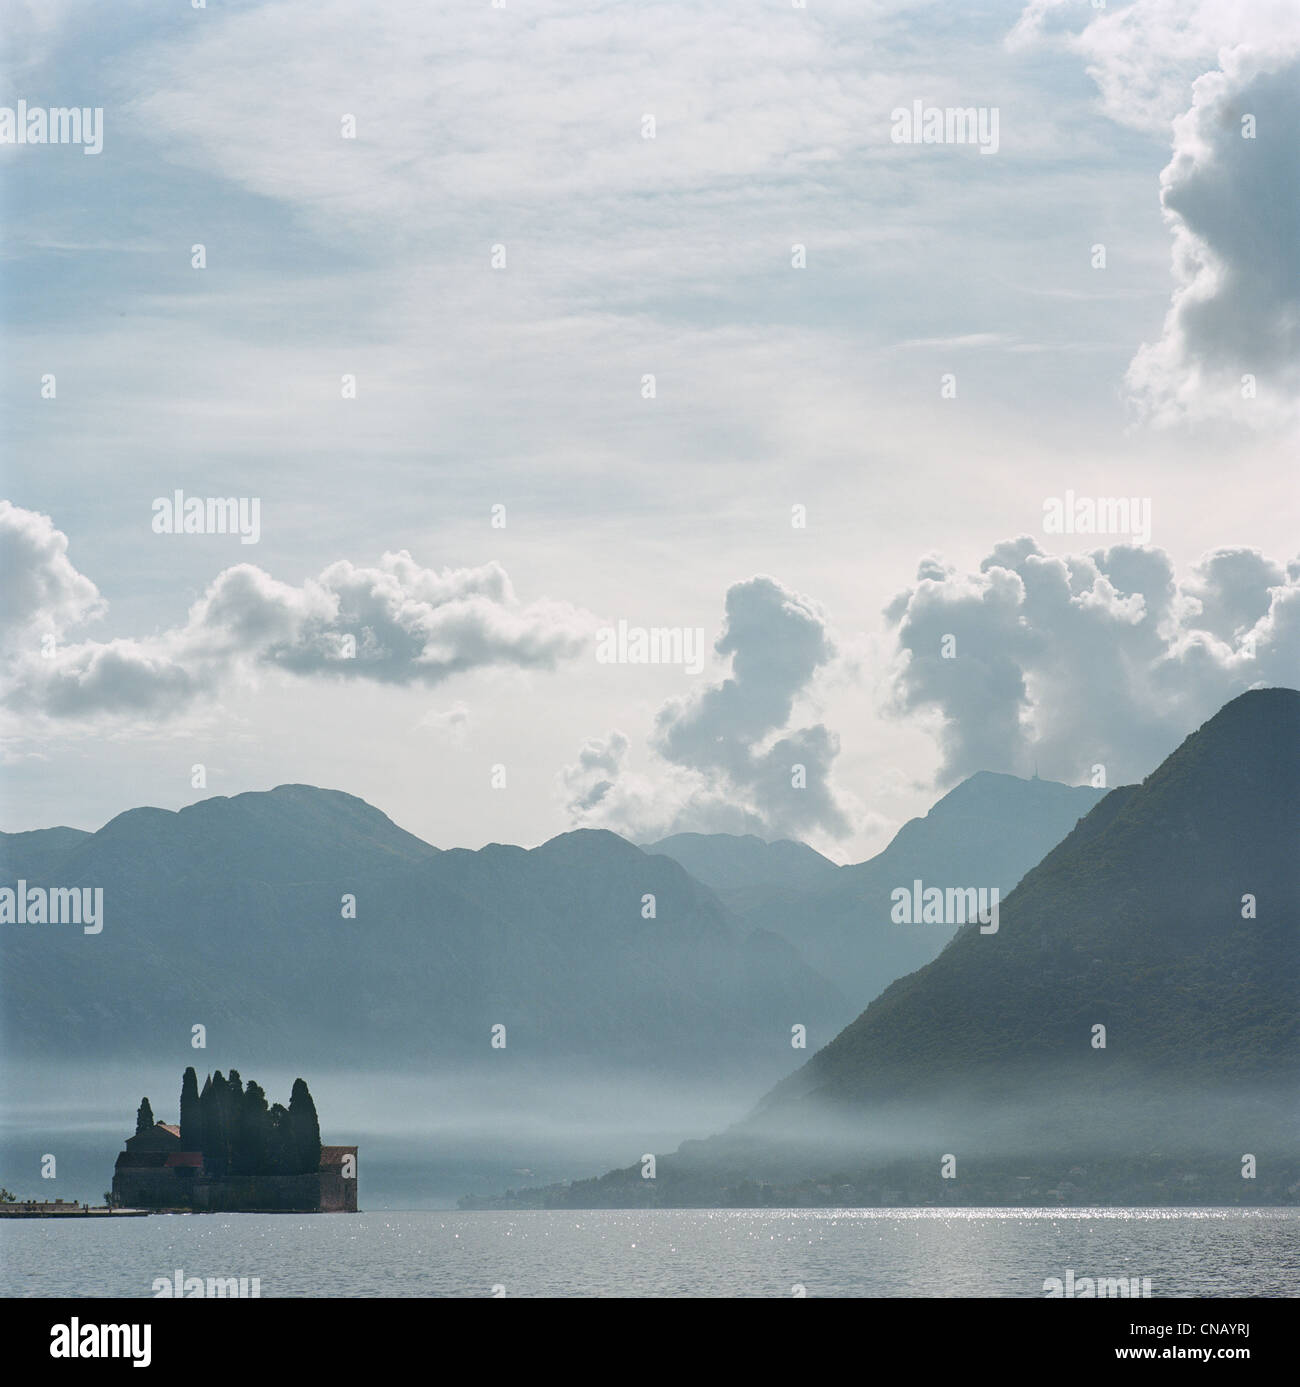 Castle and mountaintops on water - Stock Image